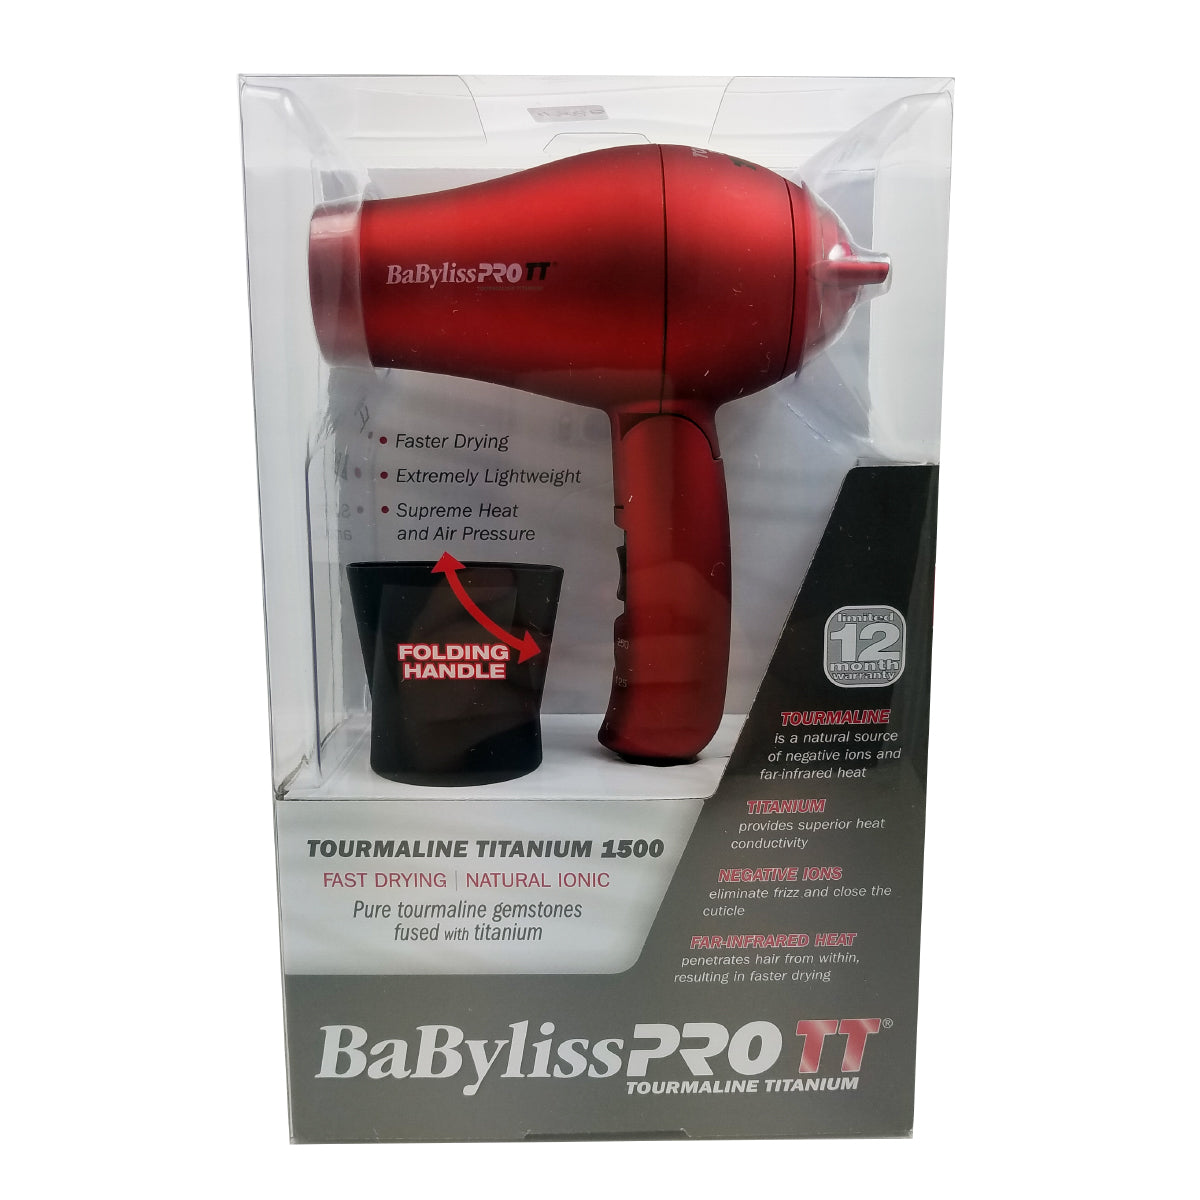 Babyliss Pro Red Tourmaline Travel Hair Dryer